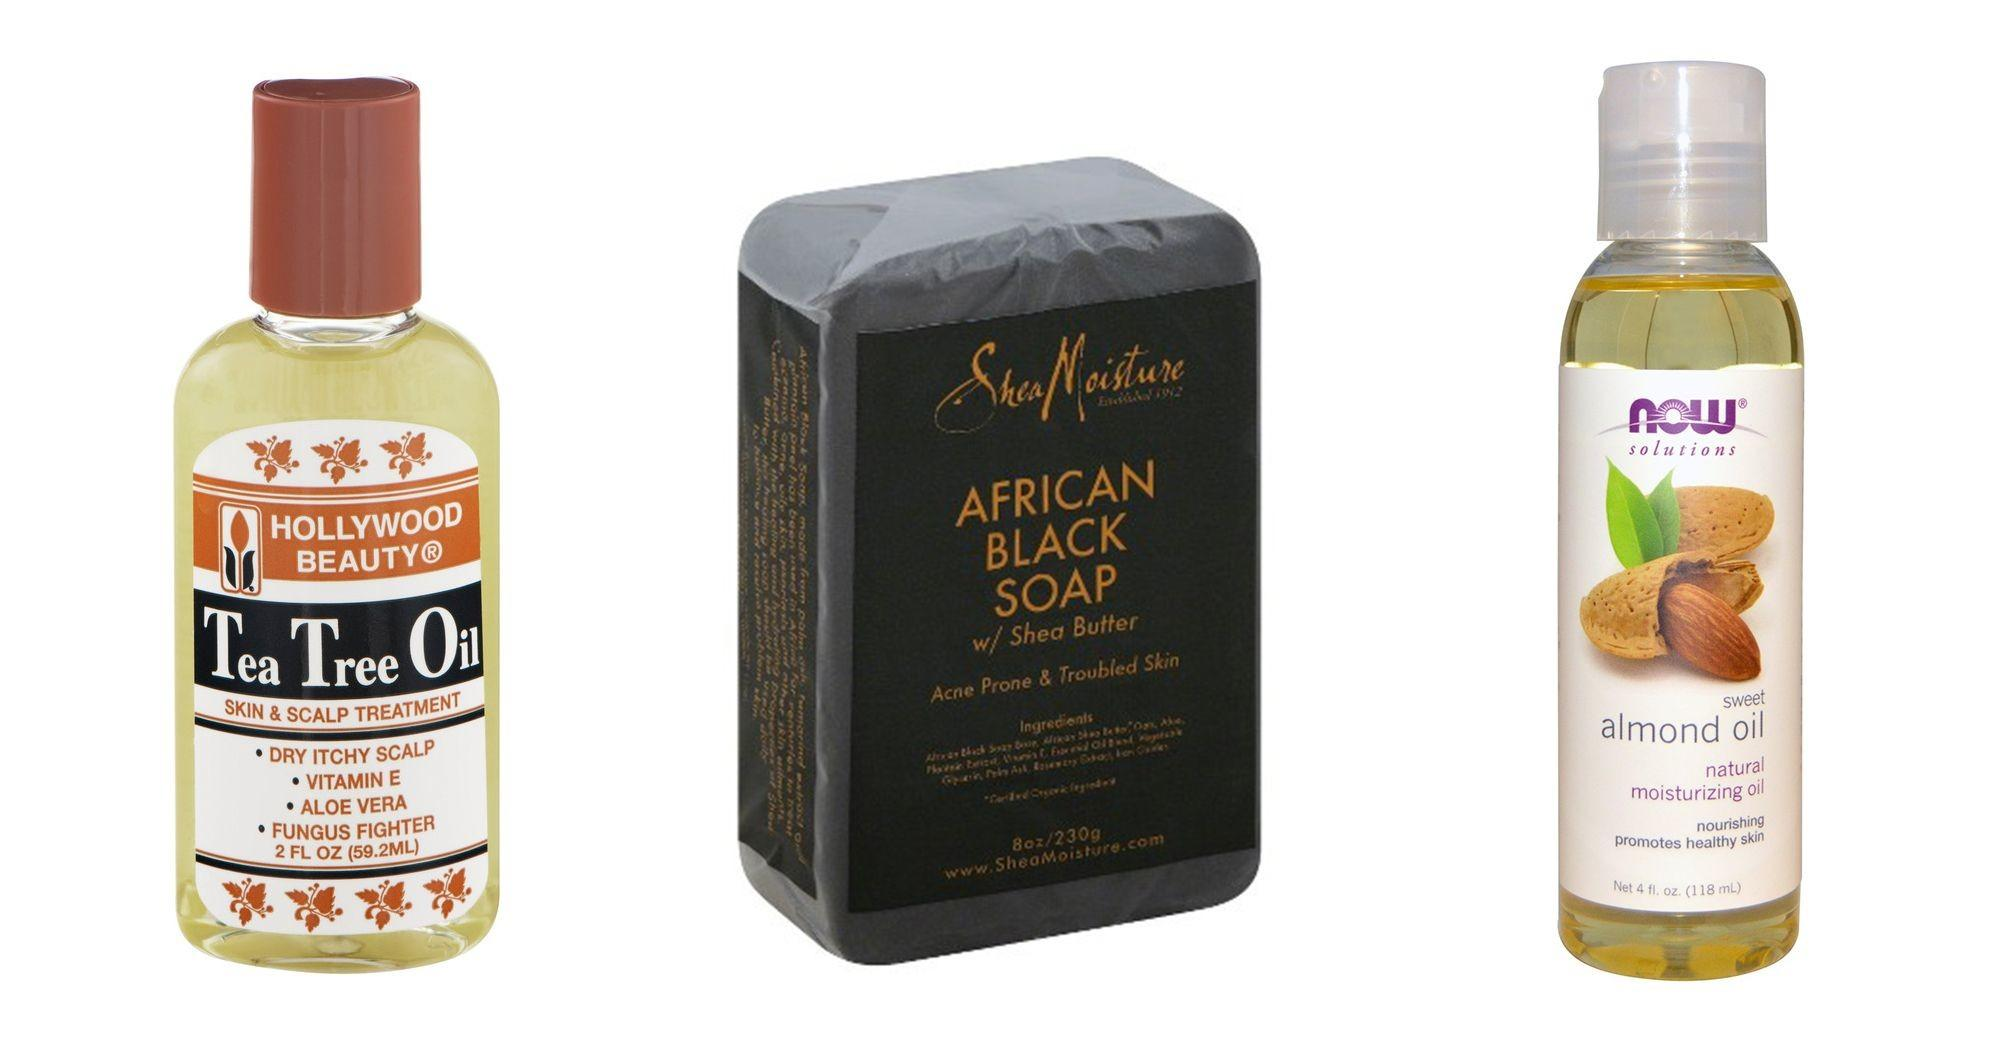 African Black Soap Shampoo Diy Home